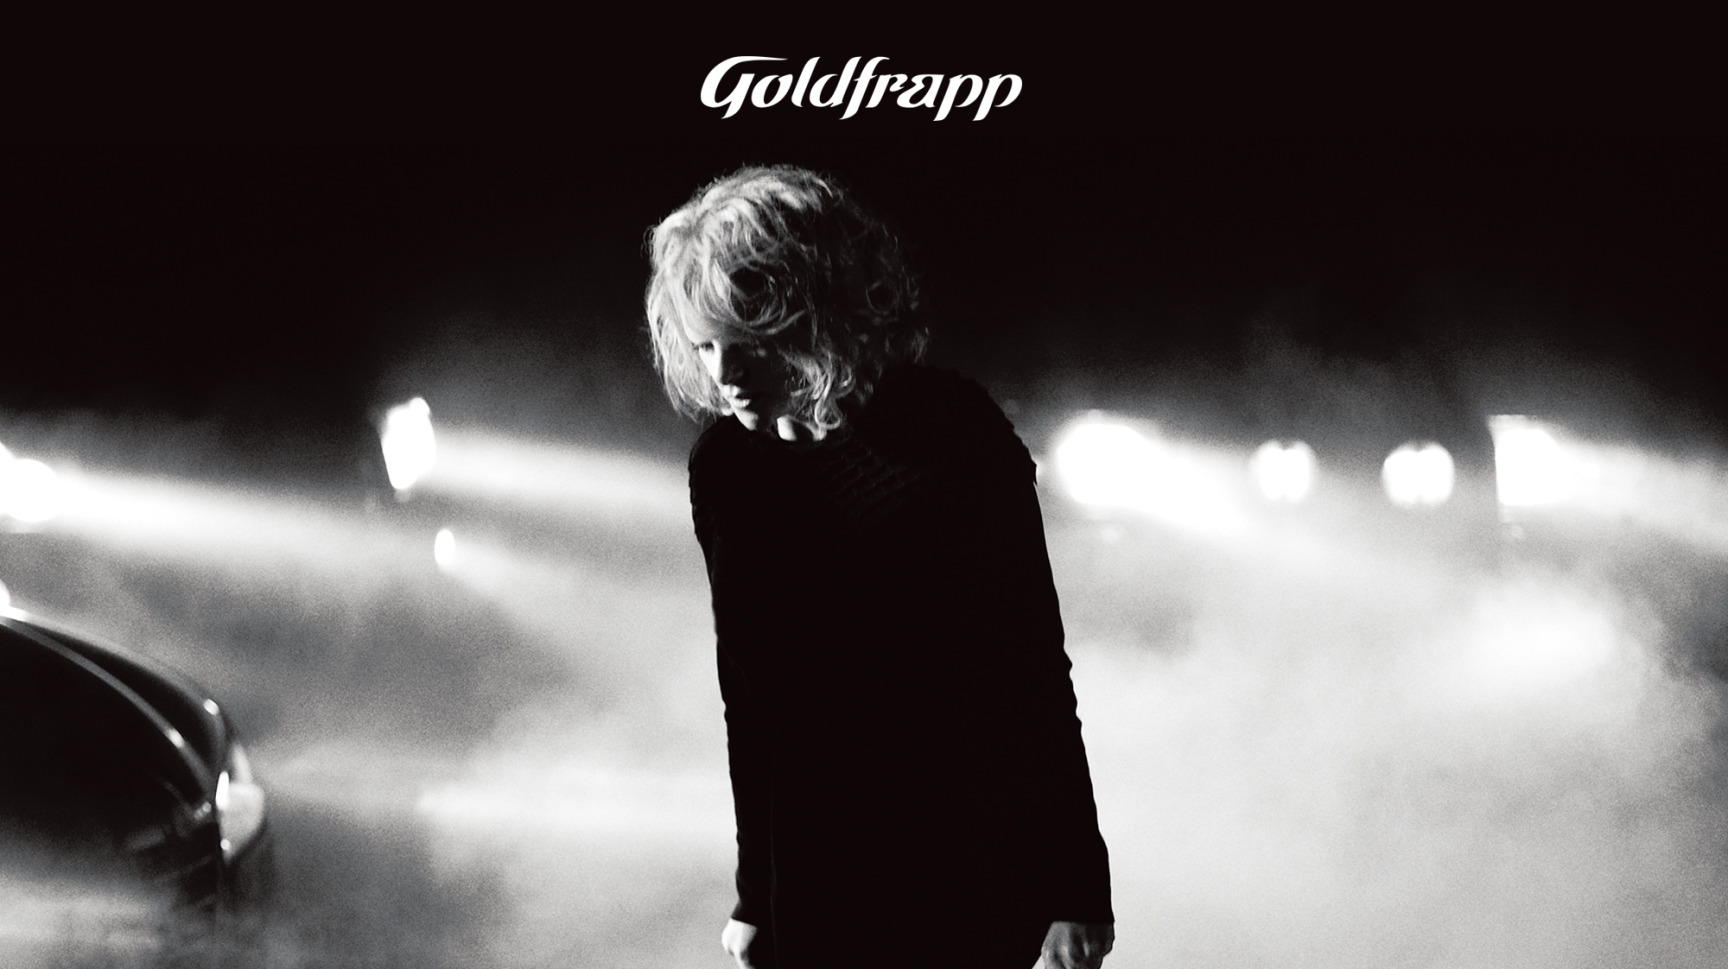 Music<br /><strong>Goldfrapp</strong>